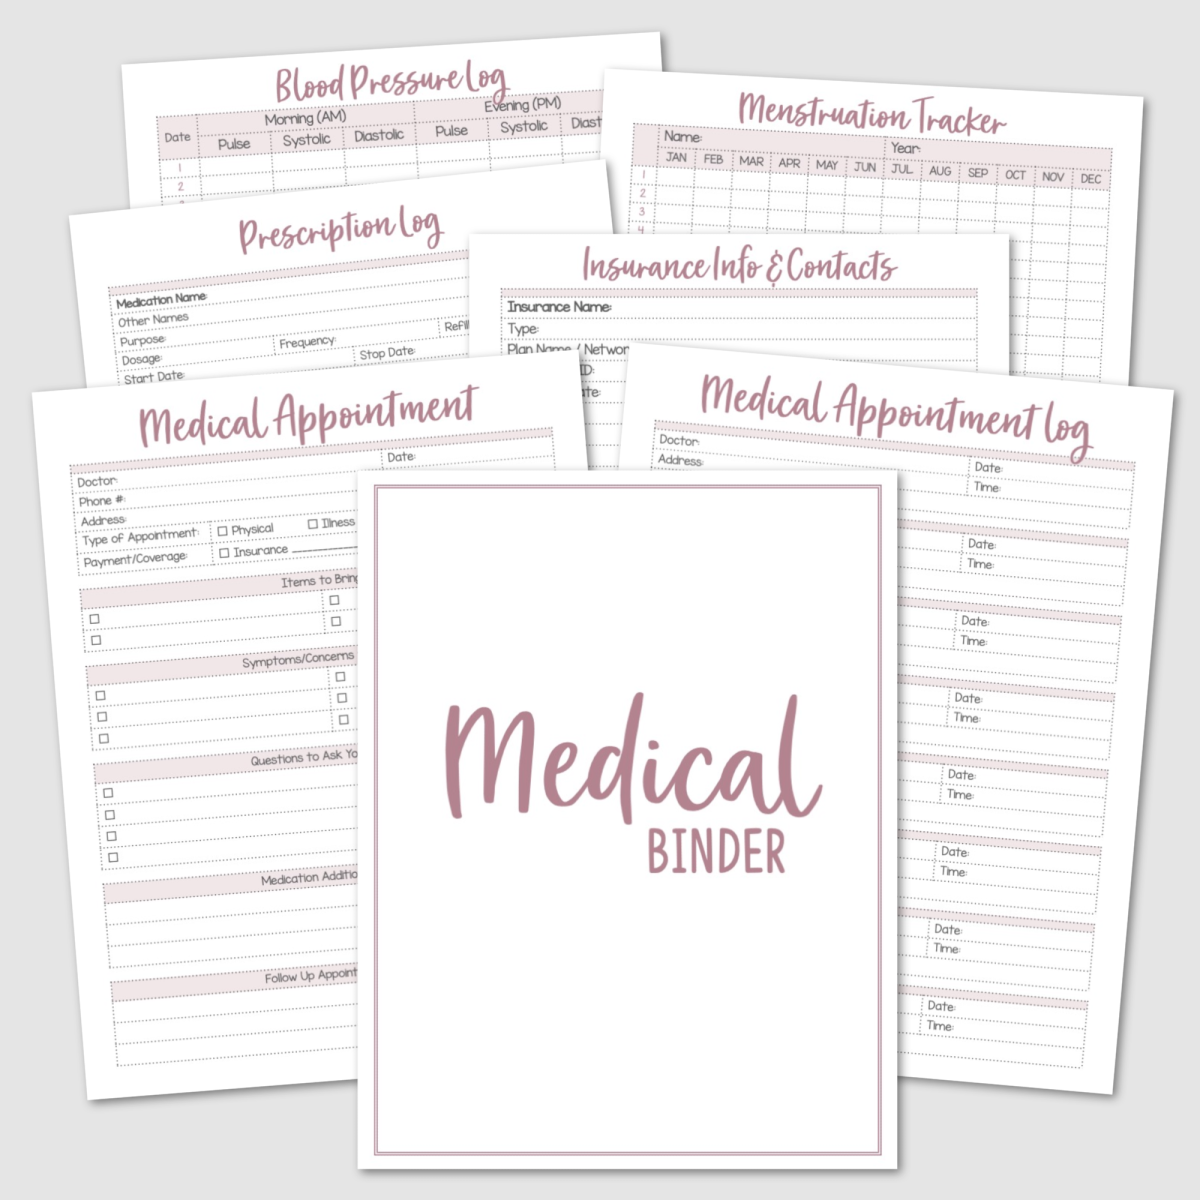 Family Medical Binder .png